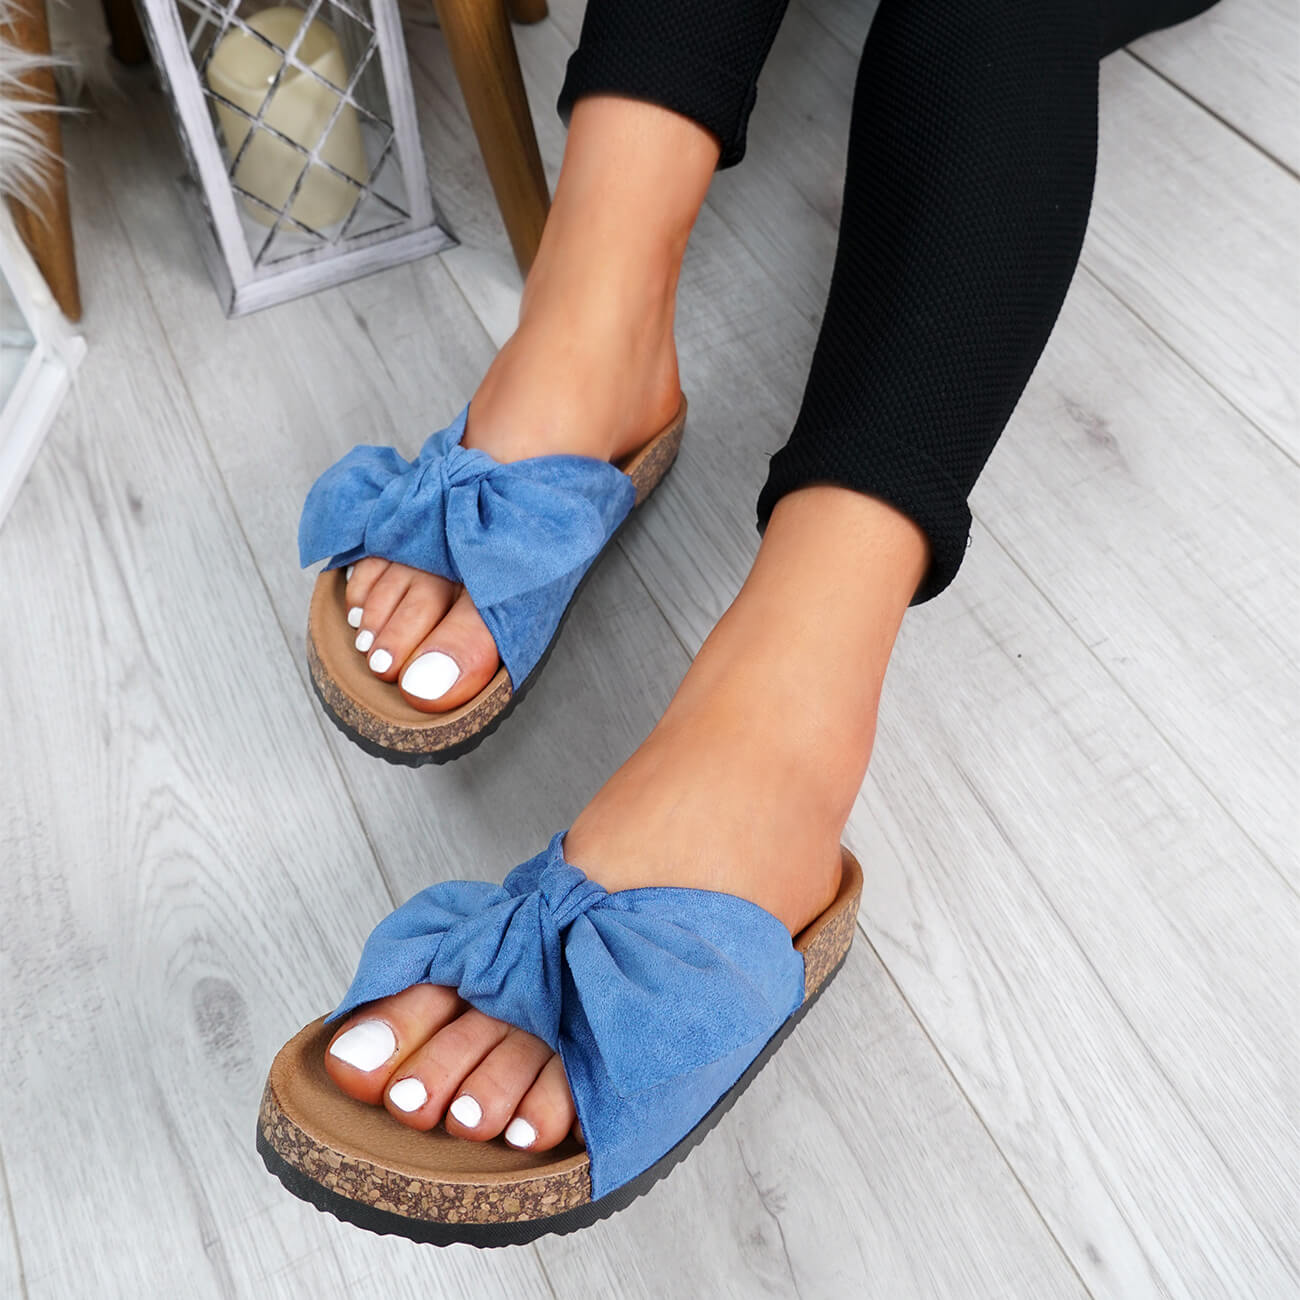 WOMENS-LADIES-SLIP-ON-FLAT-SANDALS-BOW-SLIDERS-SUMMER-CASUAL-SHOES-SIZE thumbnail 18